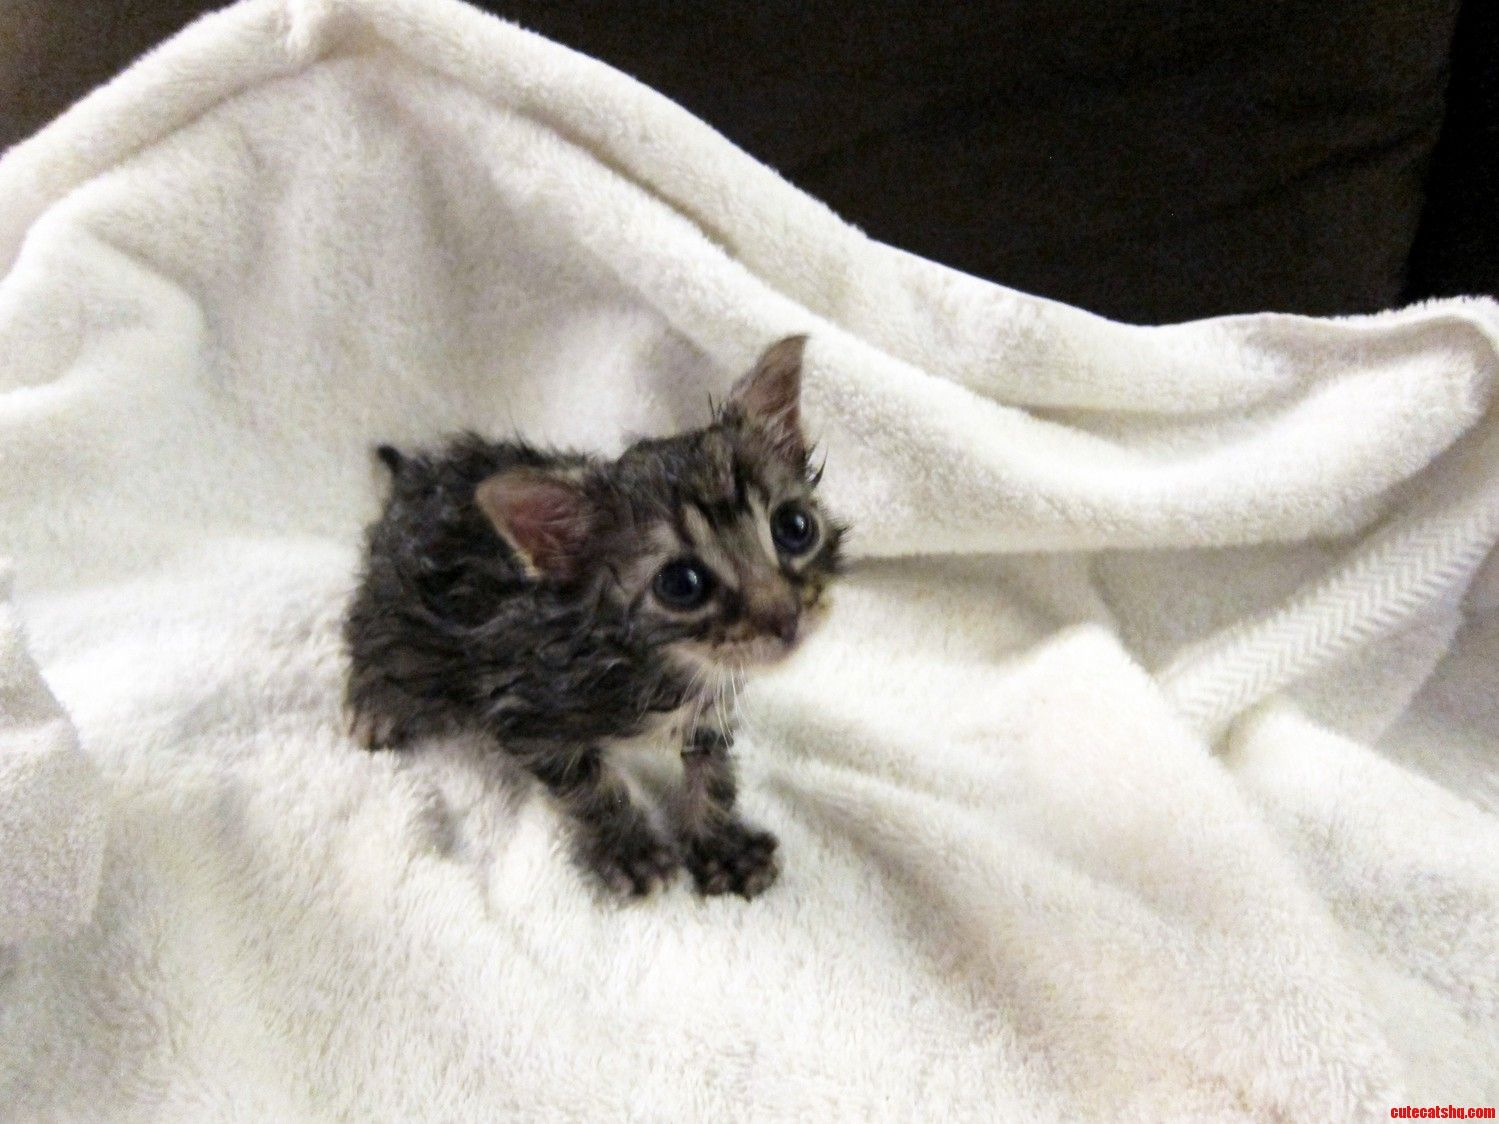 Merlins First Bath Kitten Rescue Cute Cats And Kittens Calico Kitten